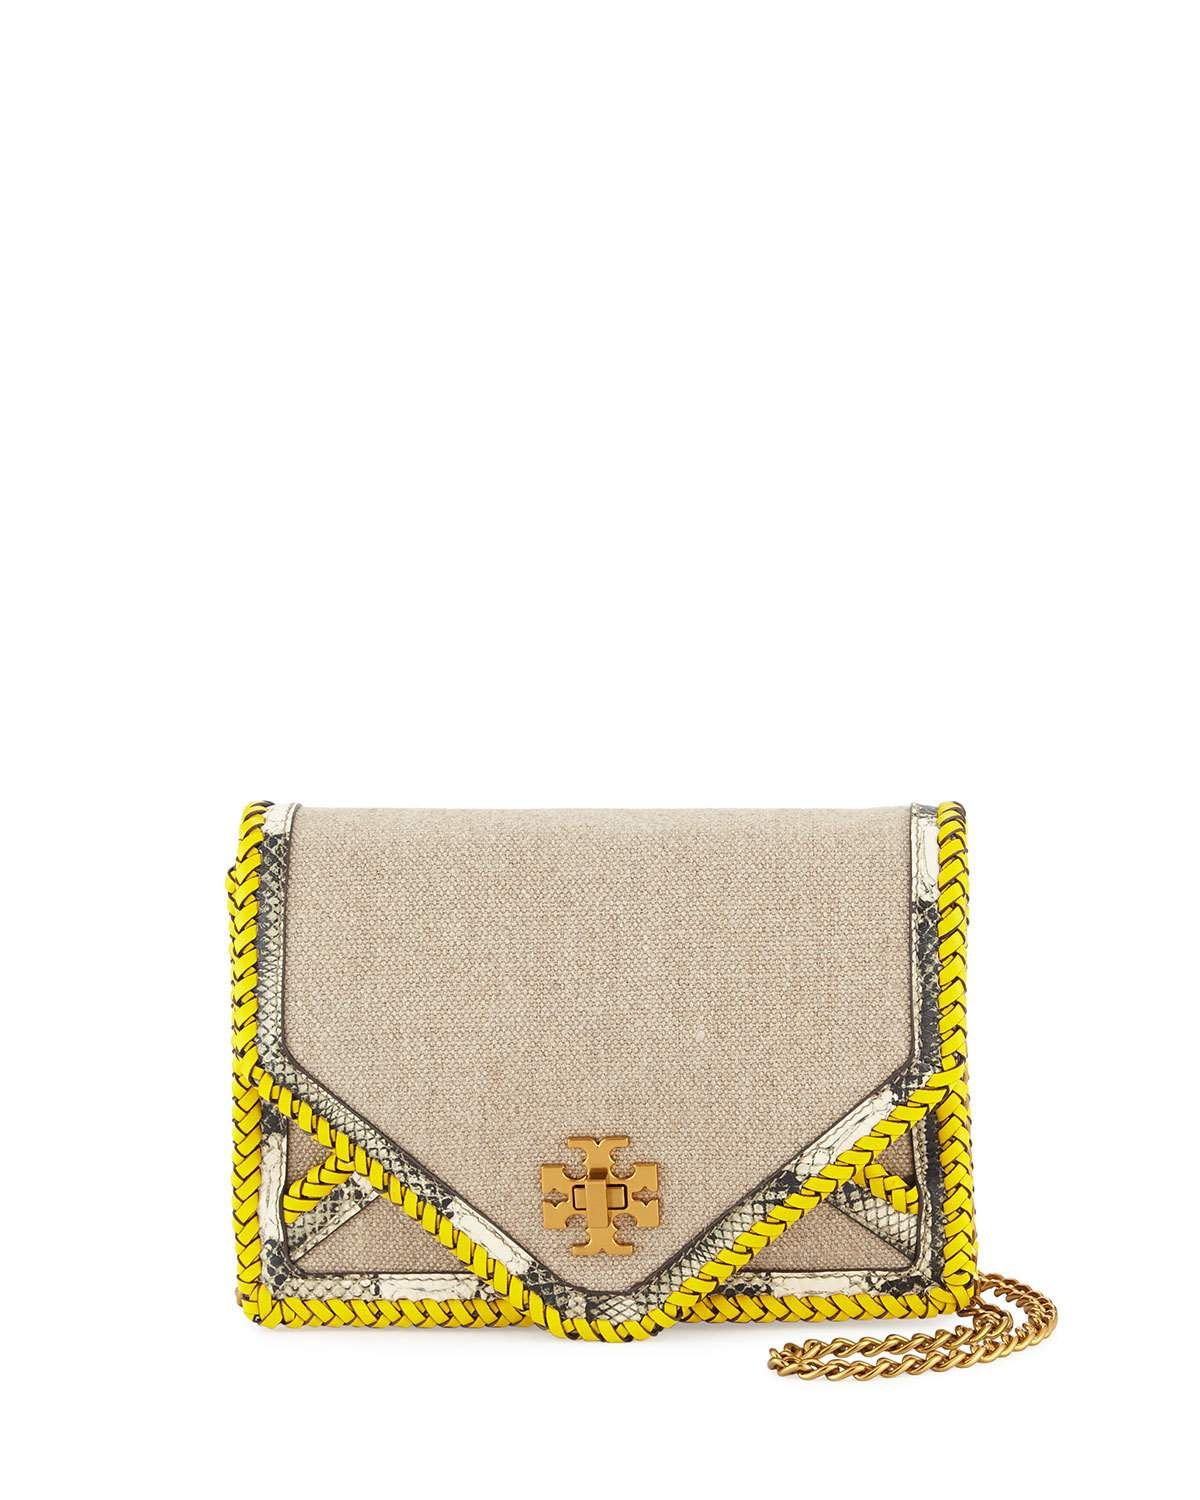 7c2668820c6 Tory Burch Kira Linen Braided Crossbody Bag